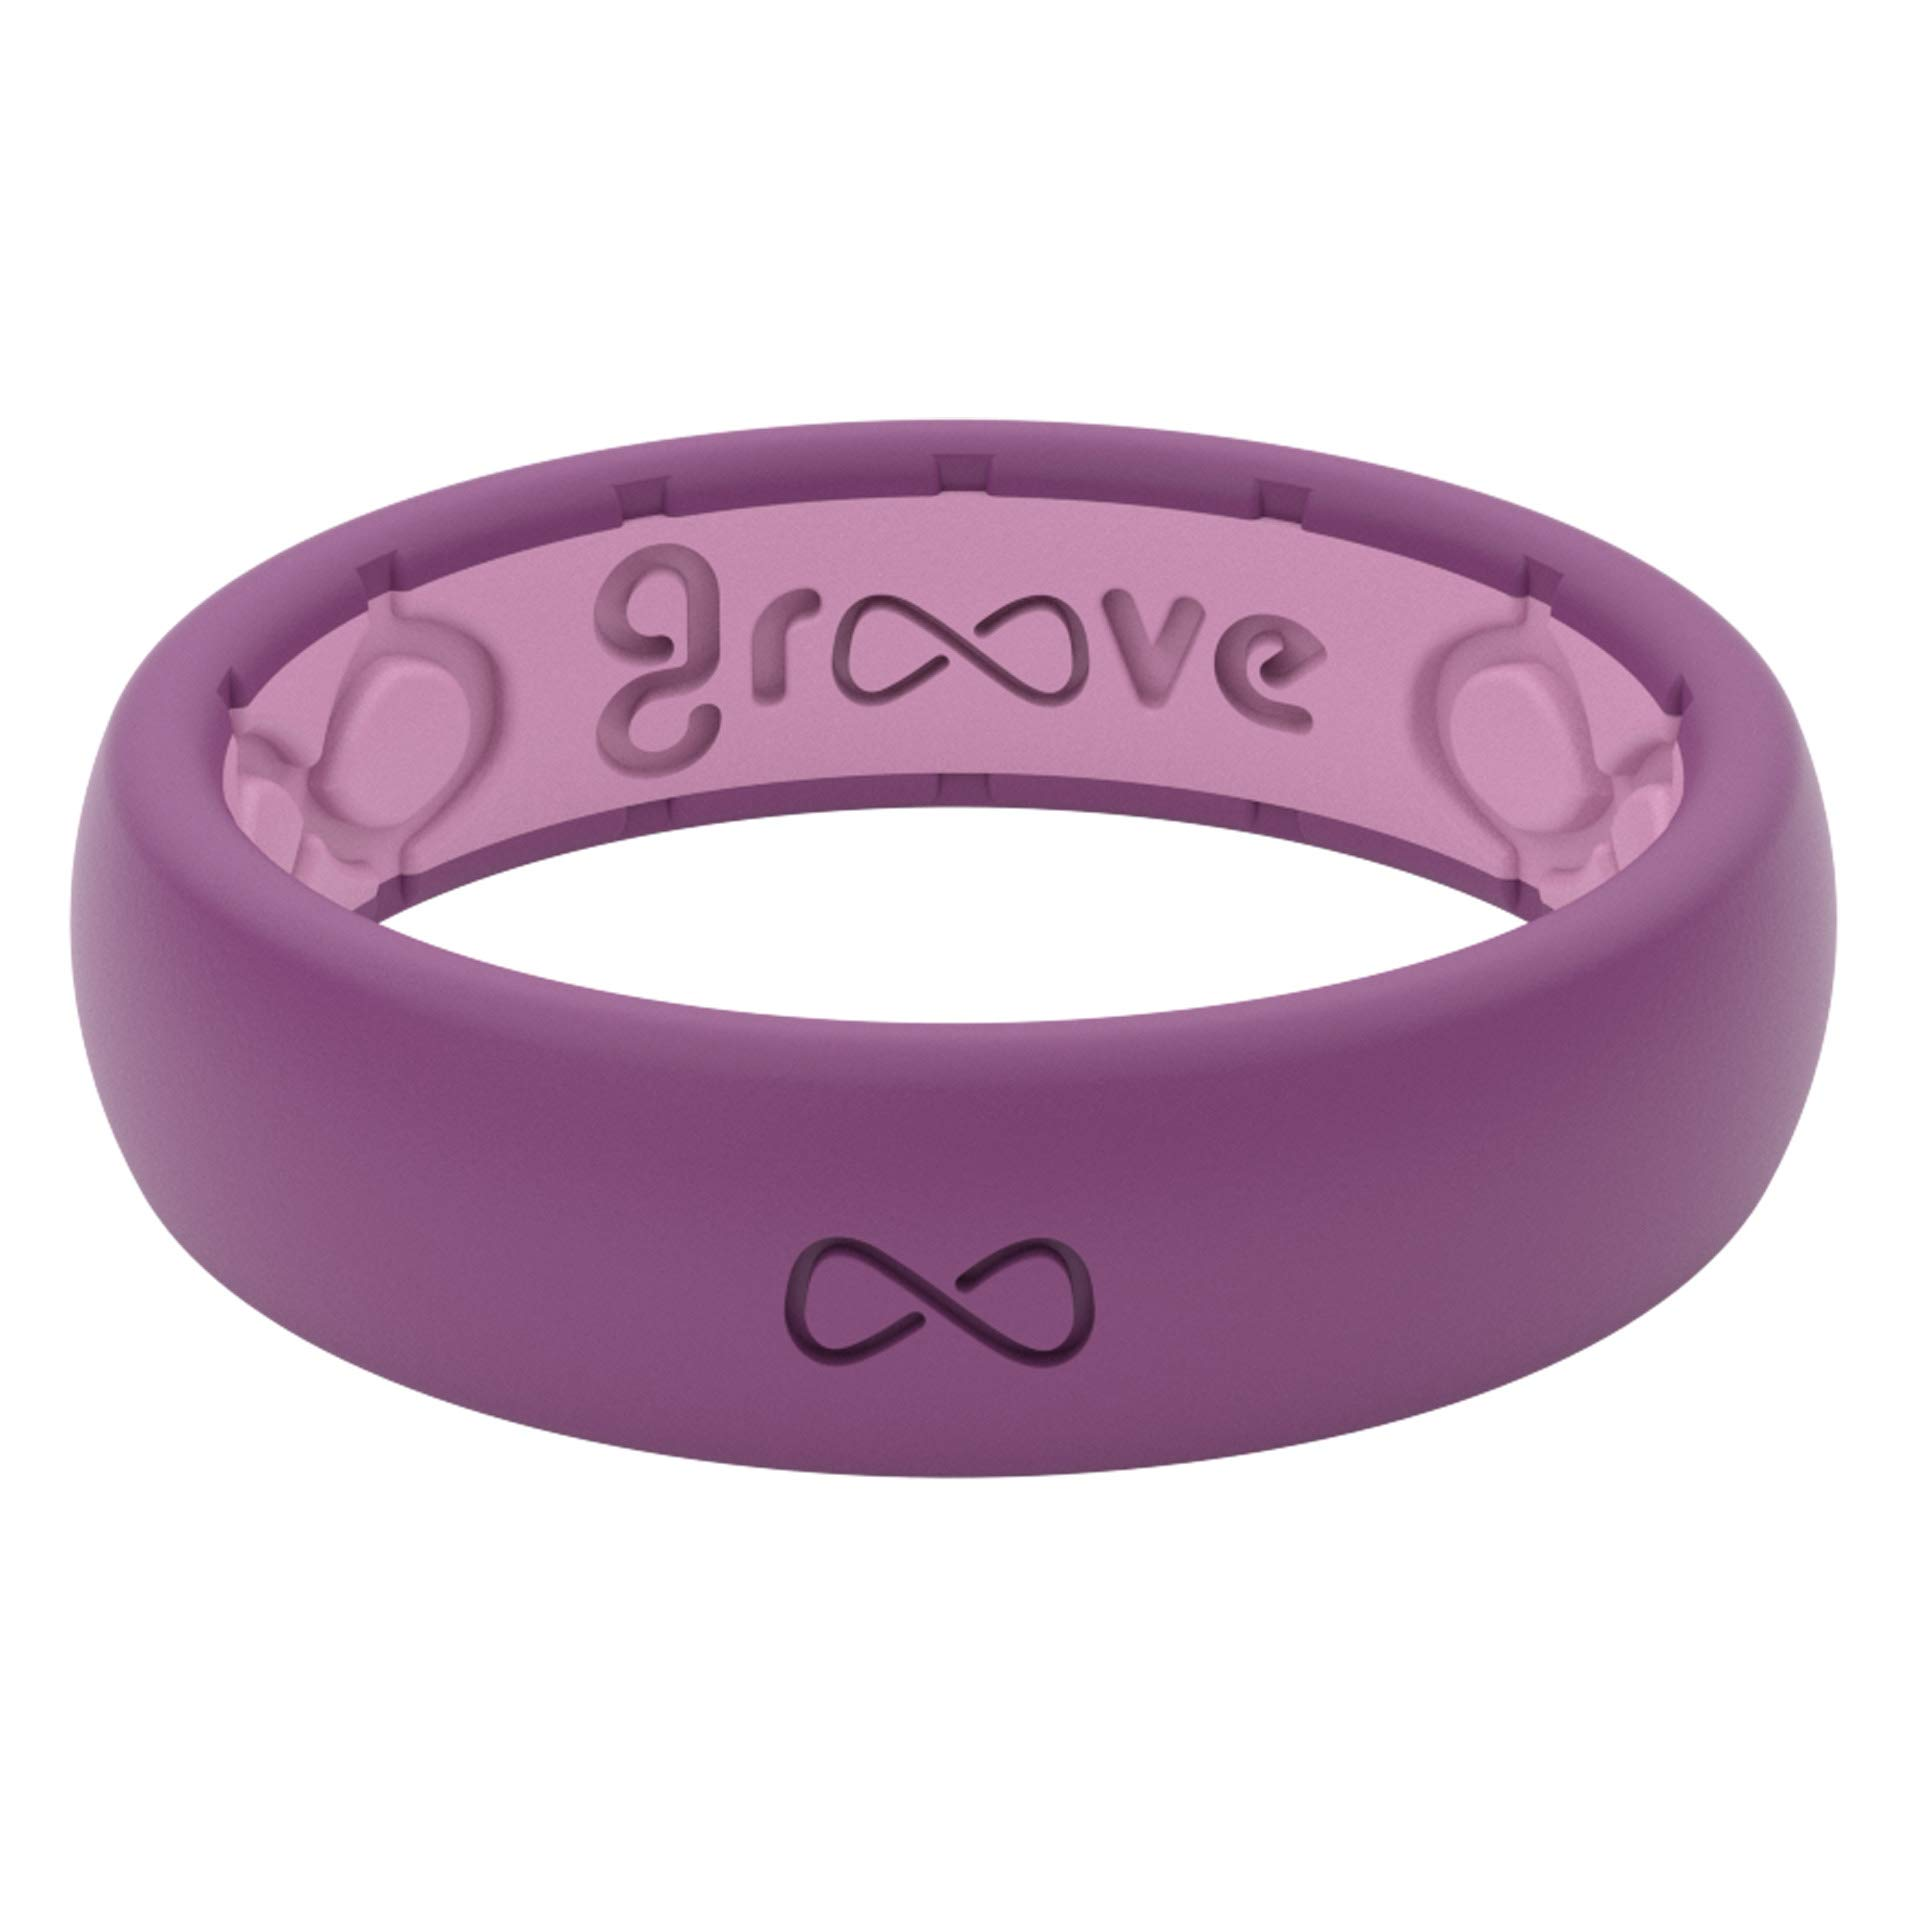 Groove Life - Silicone Ring for Men and for Women Wedding or Engagement Functional Rubber Band with, Breathable Grooves, Comfort Fit, and Durability - Thin Solid Lilac Size 4